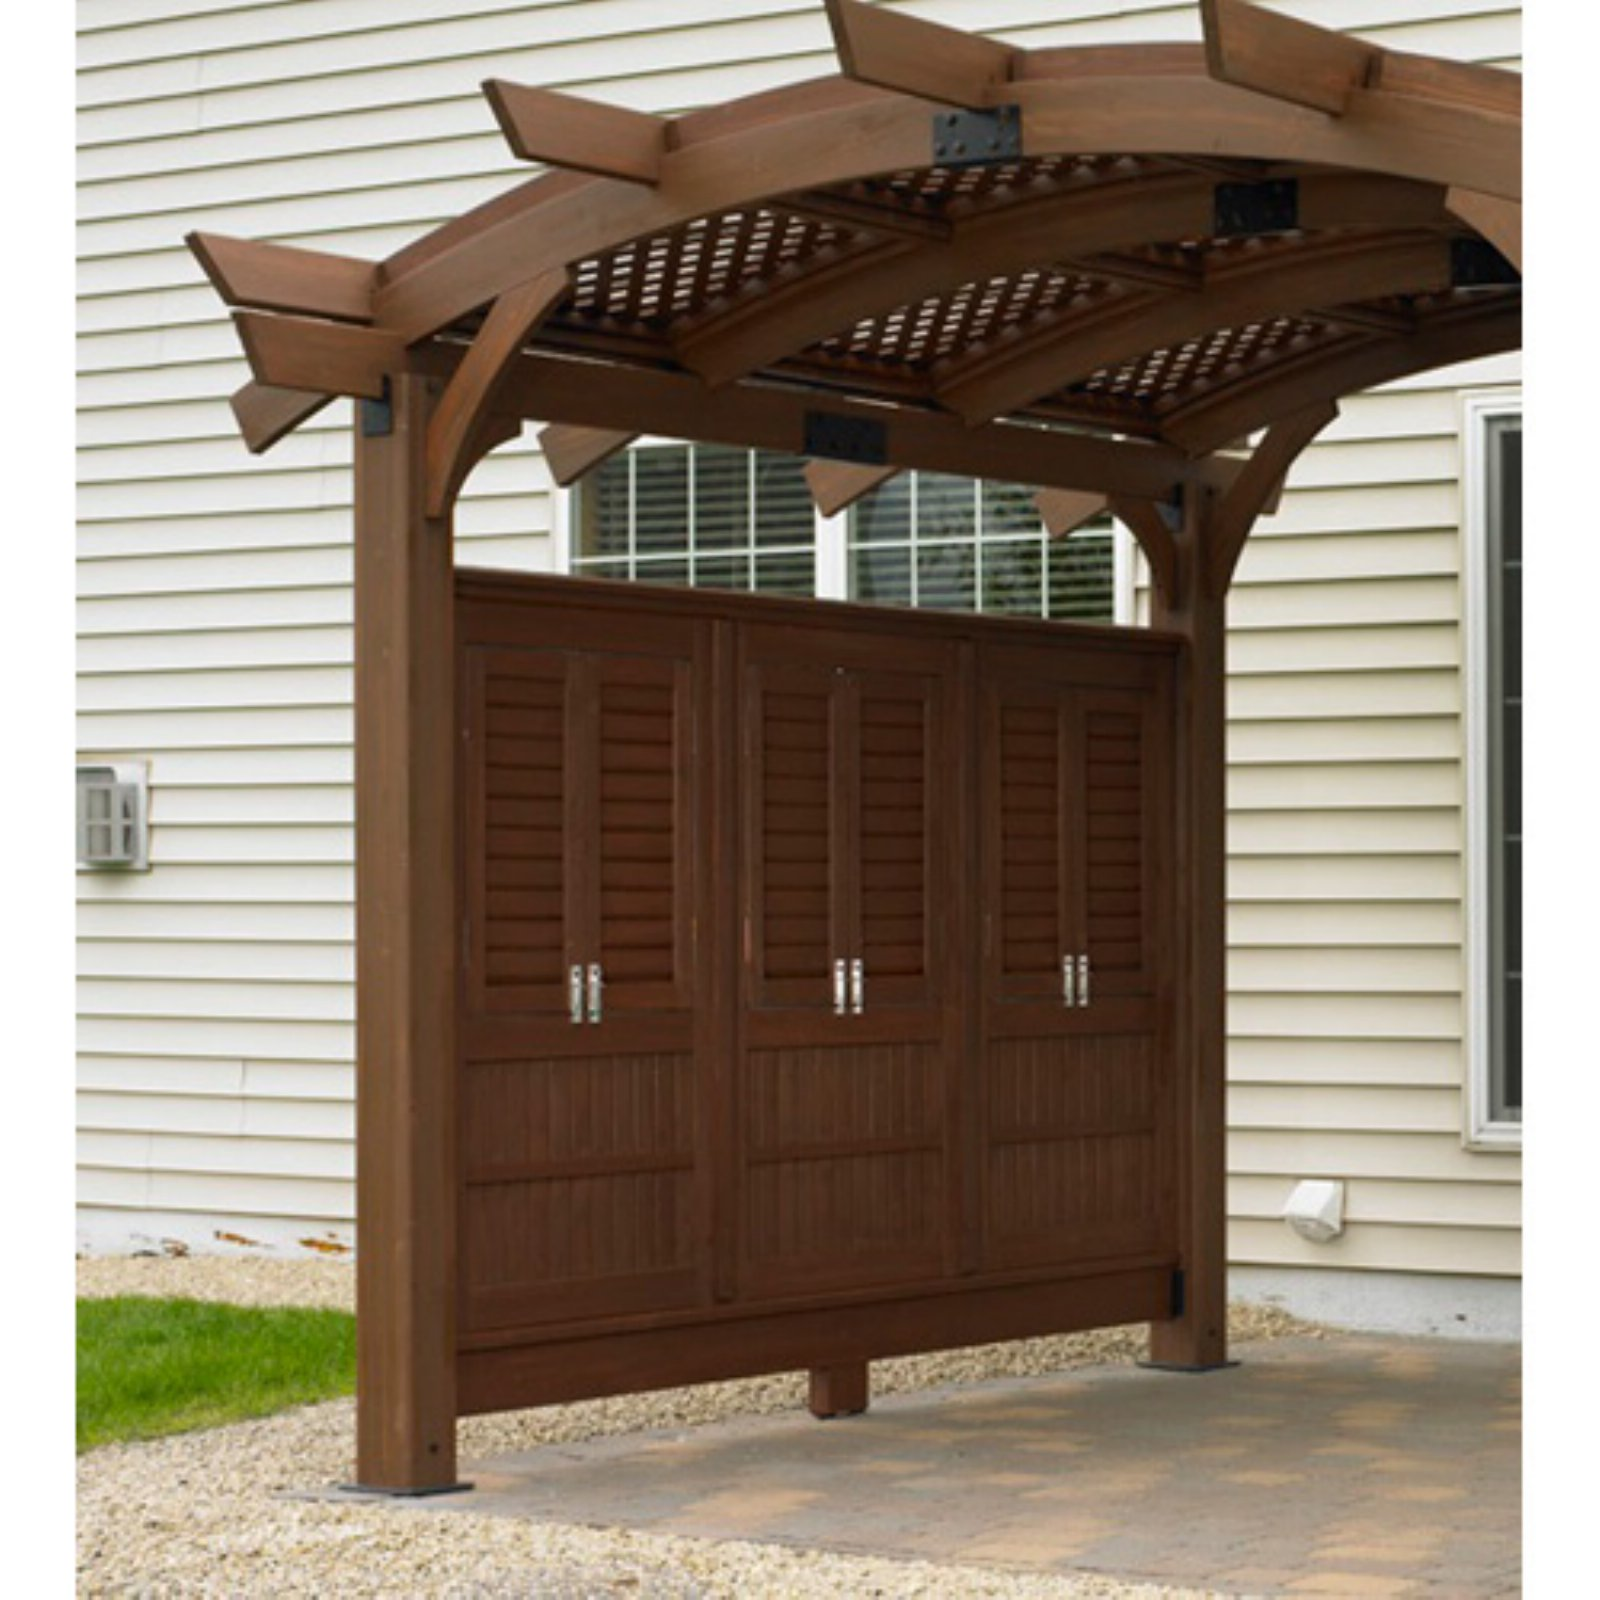 Outdoor GreatRoom Privacy Wall for Sonoma Arched Pergola